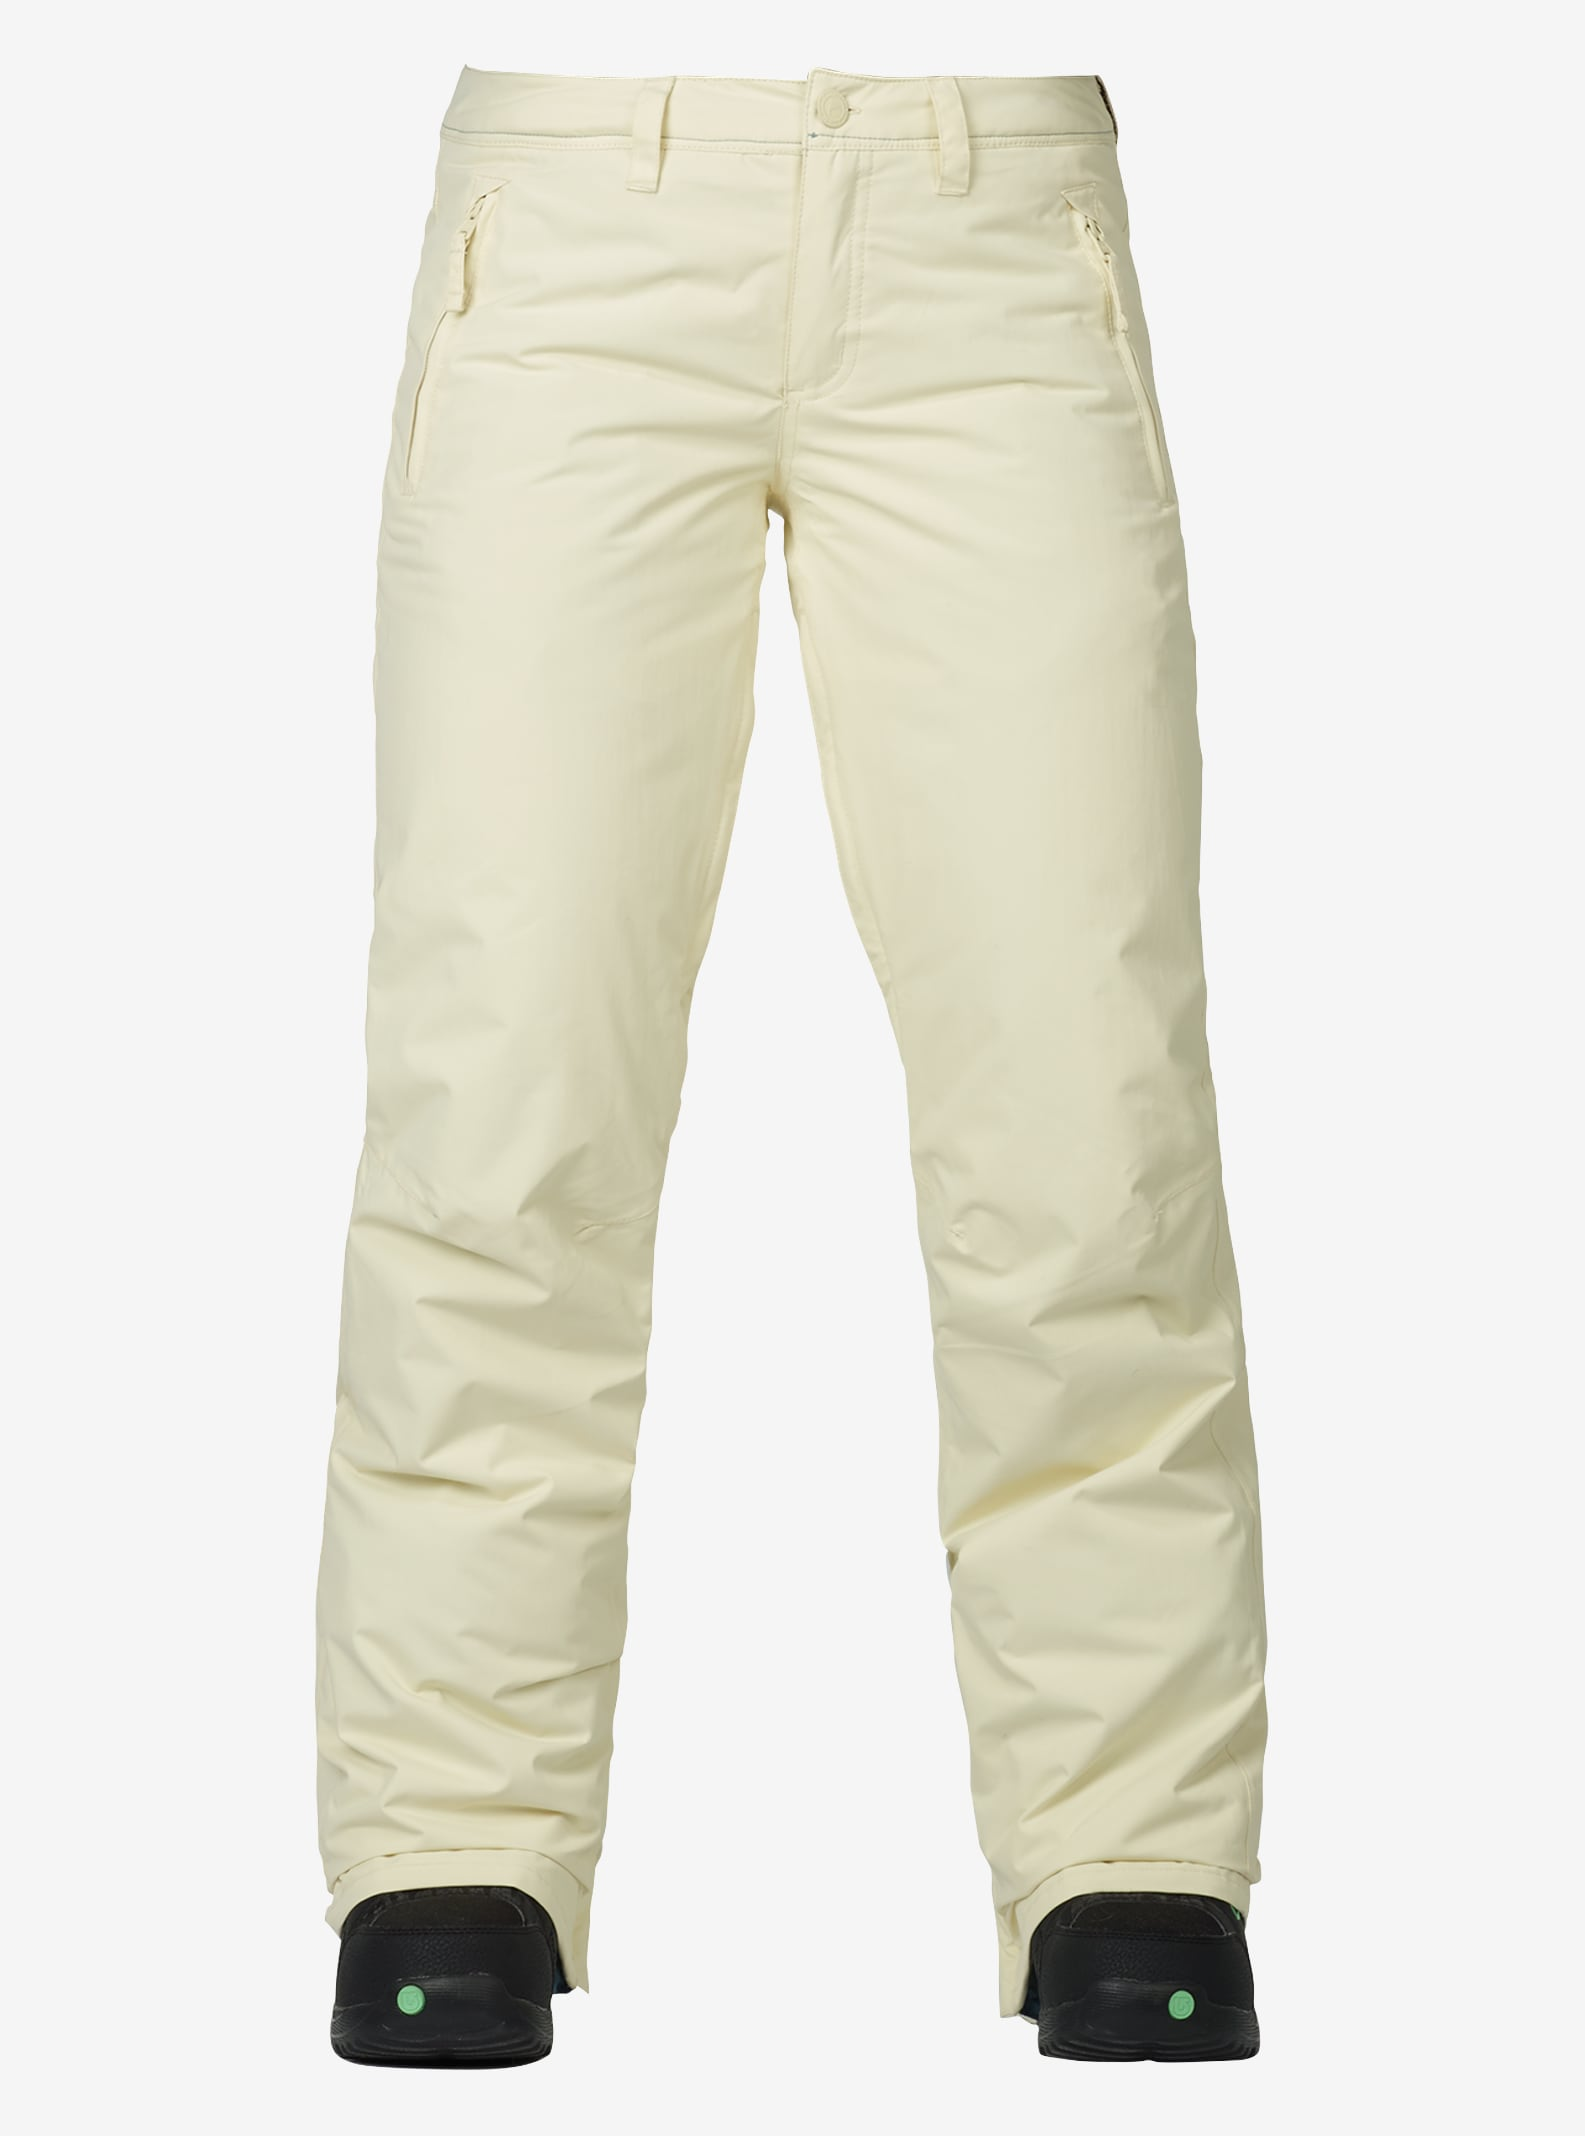 Women's Burton Society Pant shown in Canvas